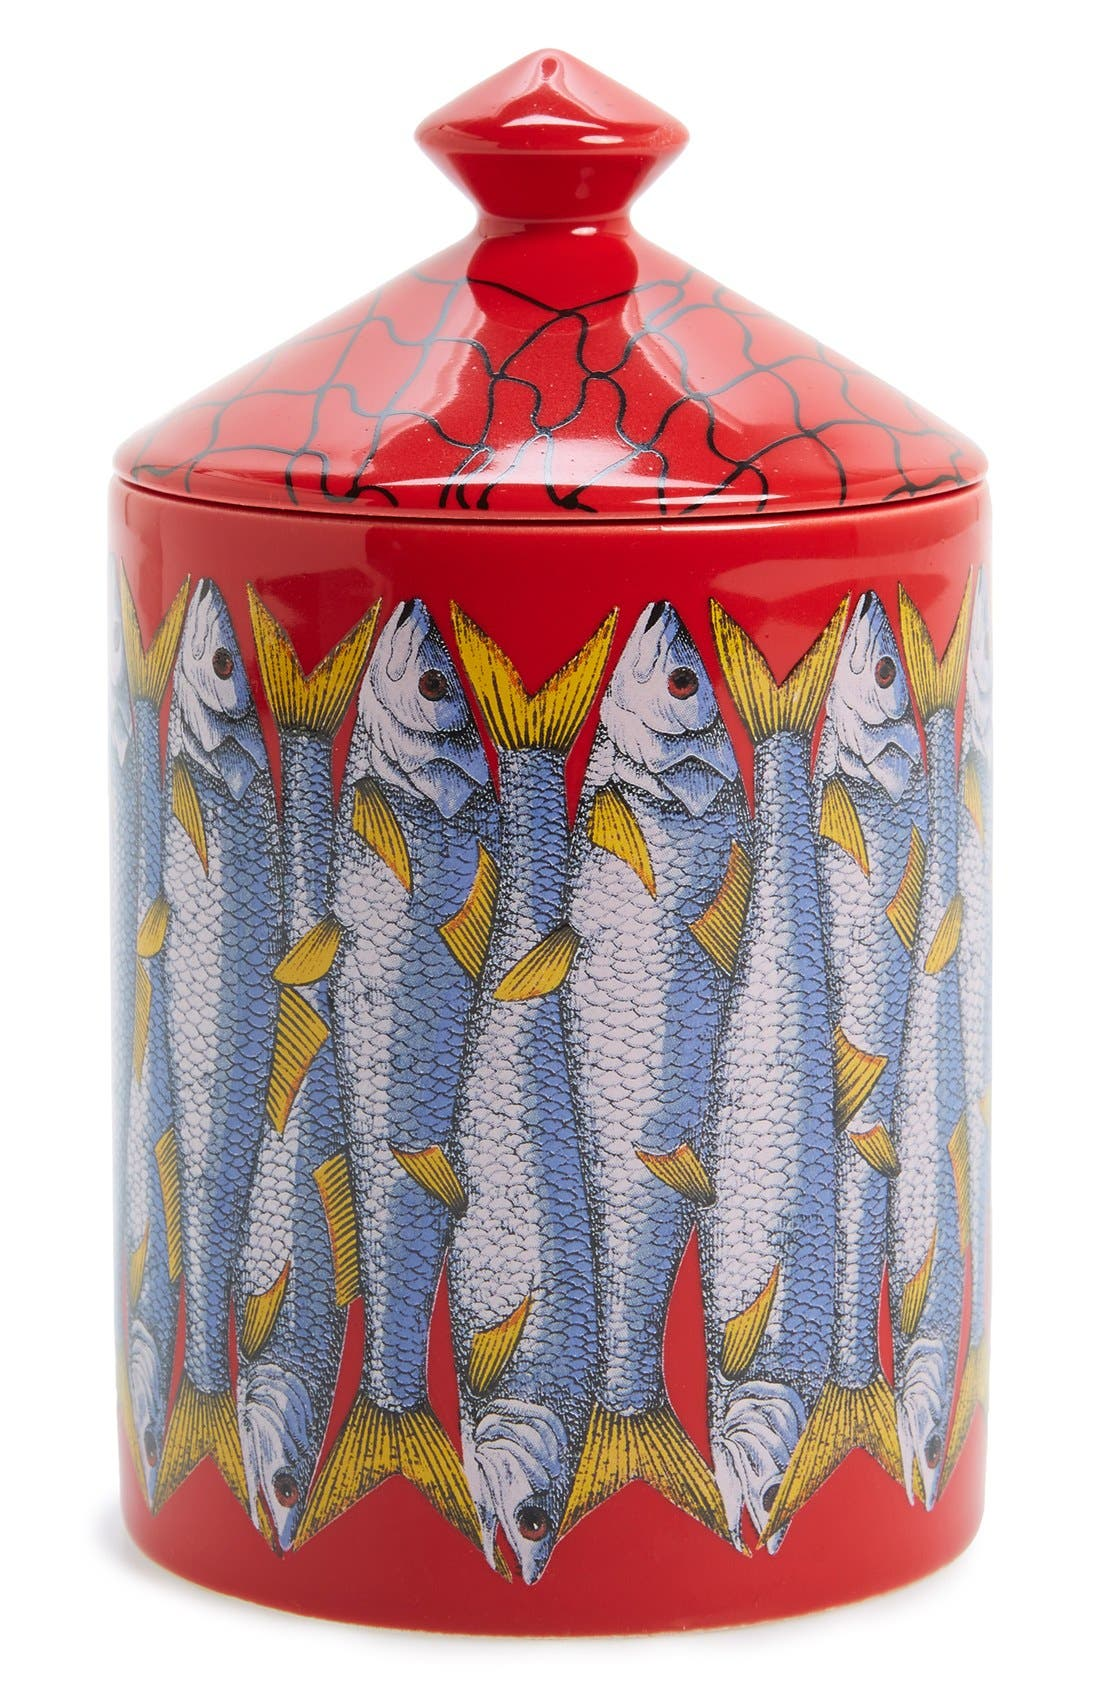 'Sardine Rosso' Lidded Candle,                             Main thumbnail 1, color,                             000